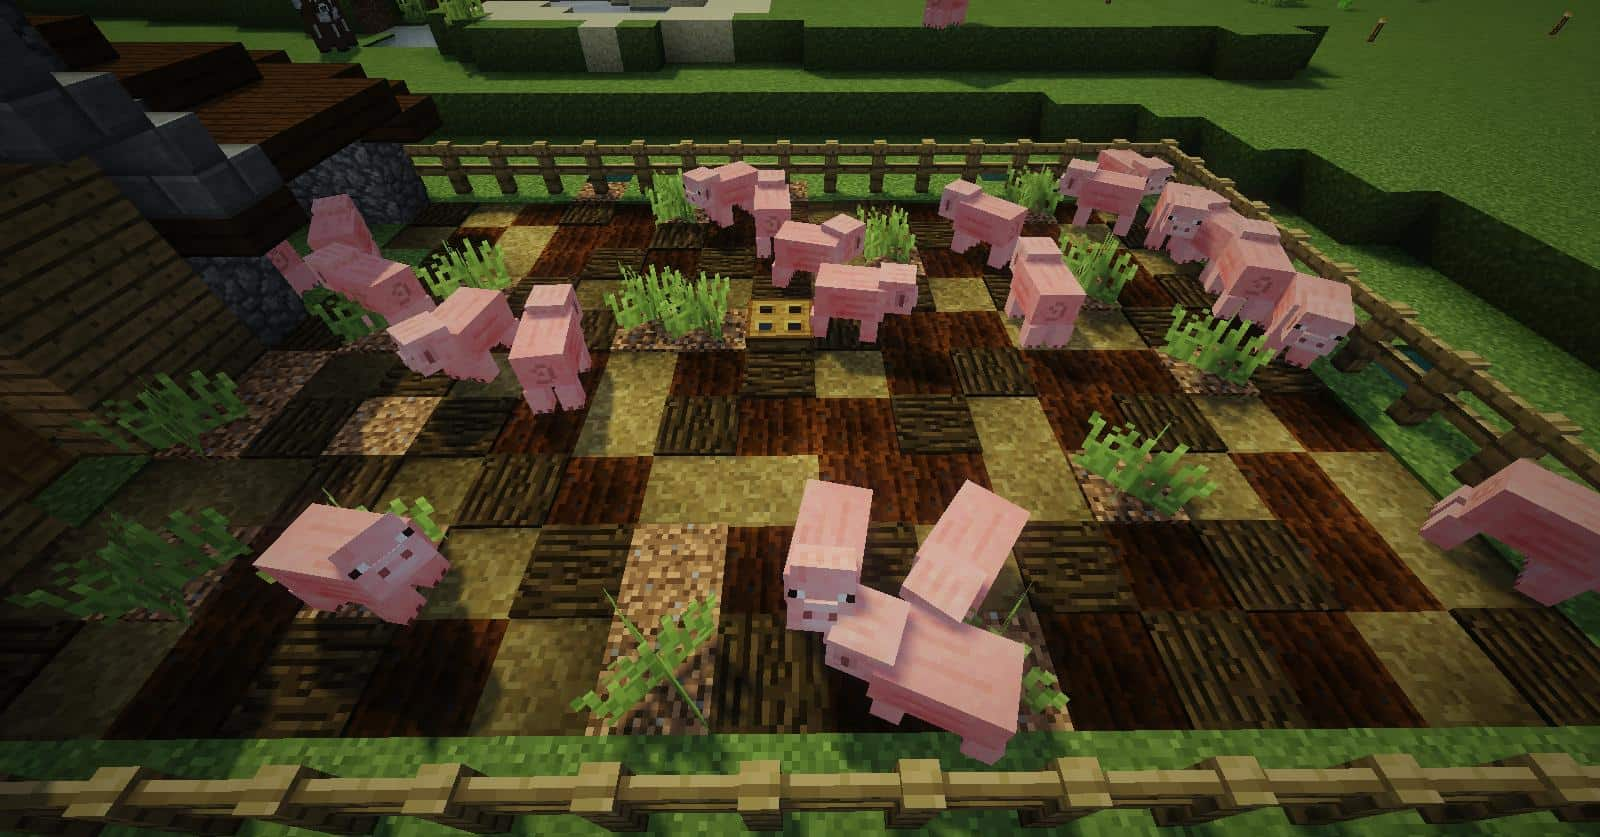 How it looks in vanilla minecraft detail building ideas pig pen farm